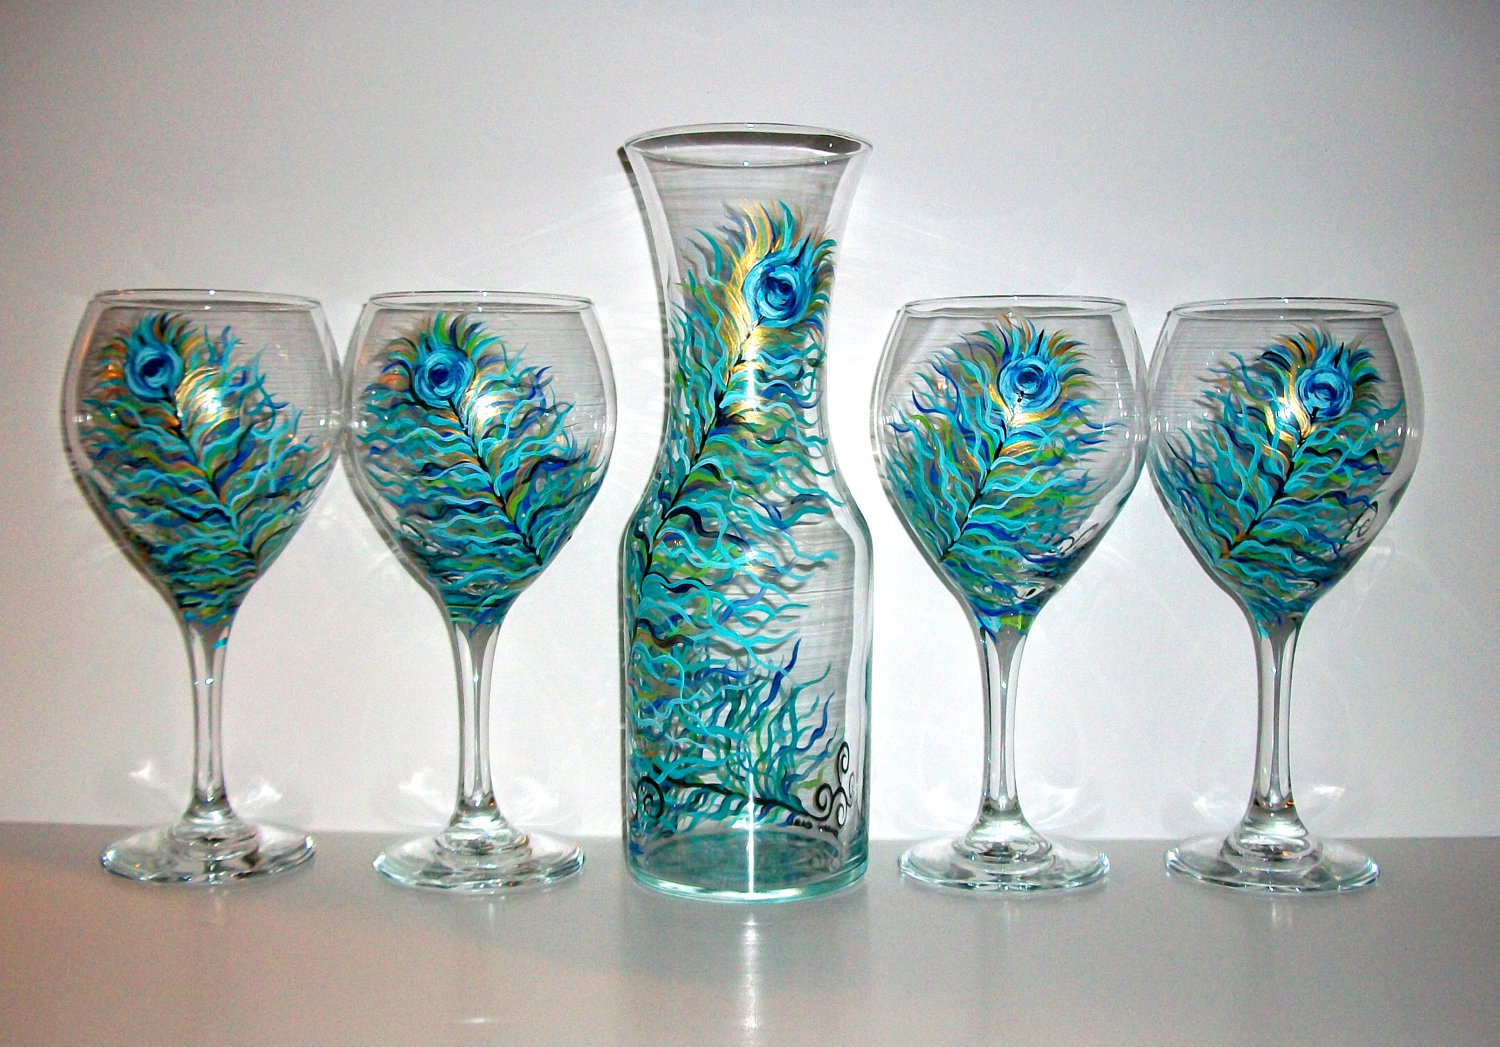 If you also like decorative glass then read this article ...